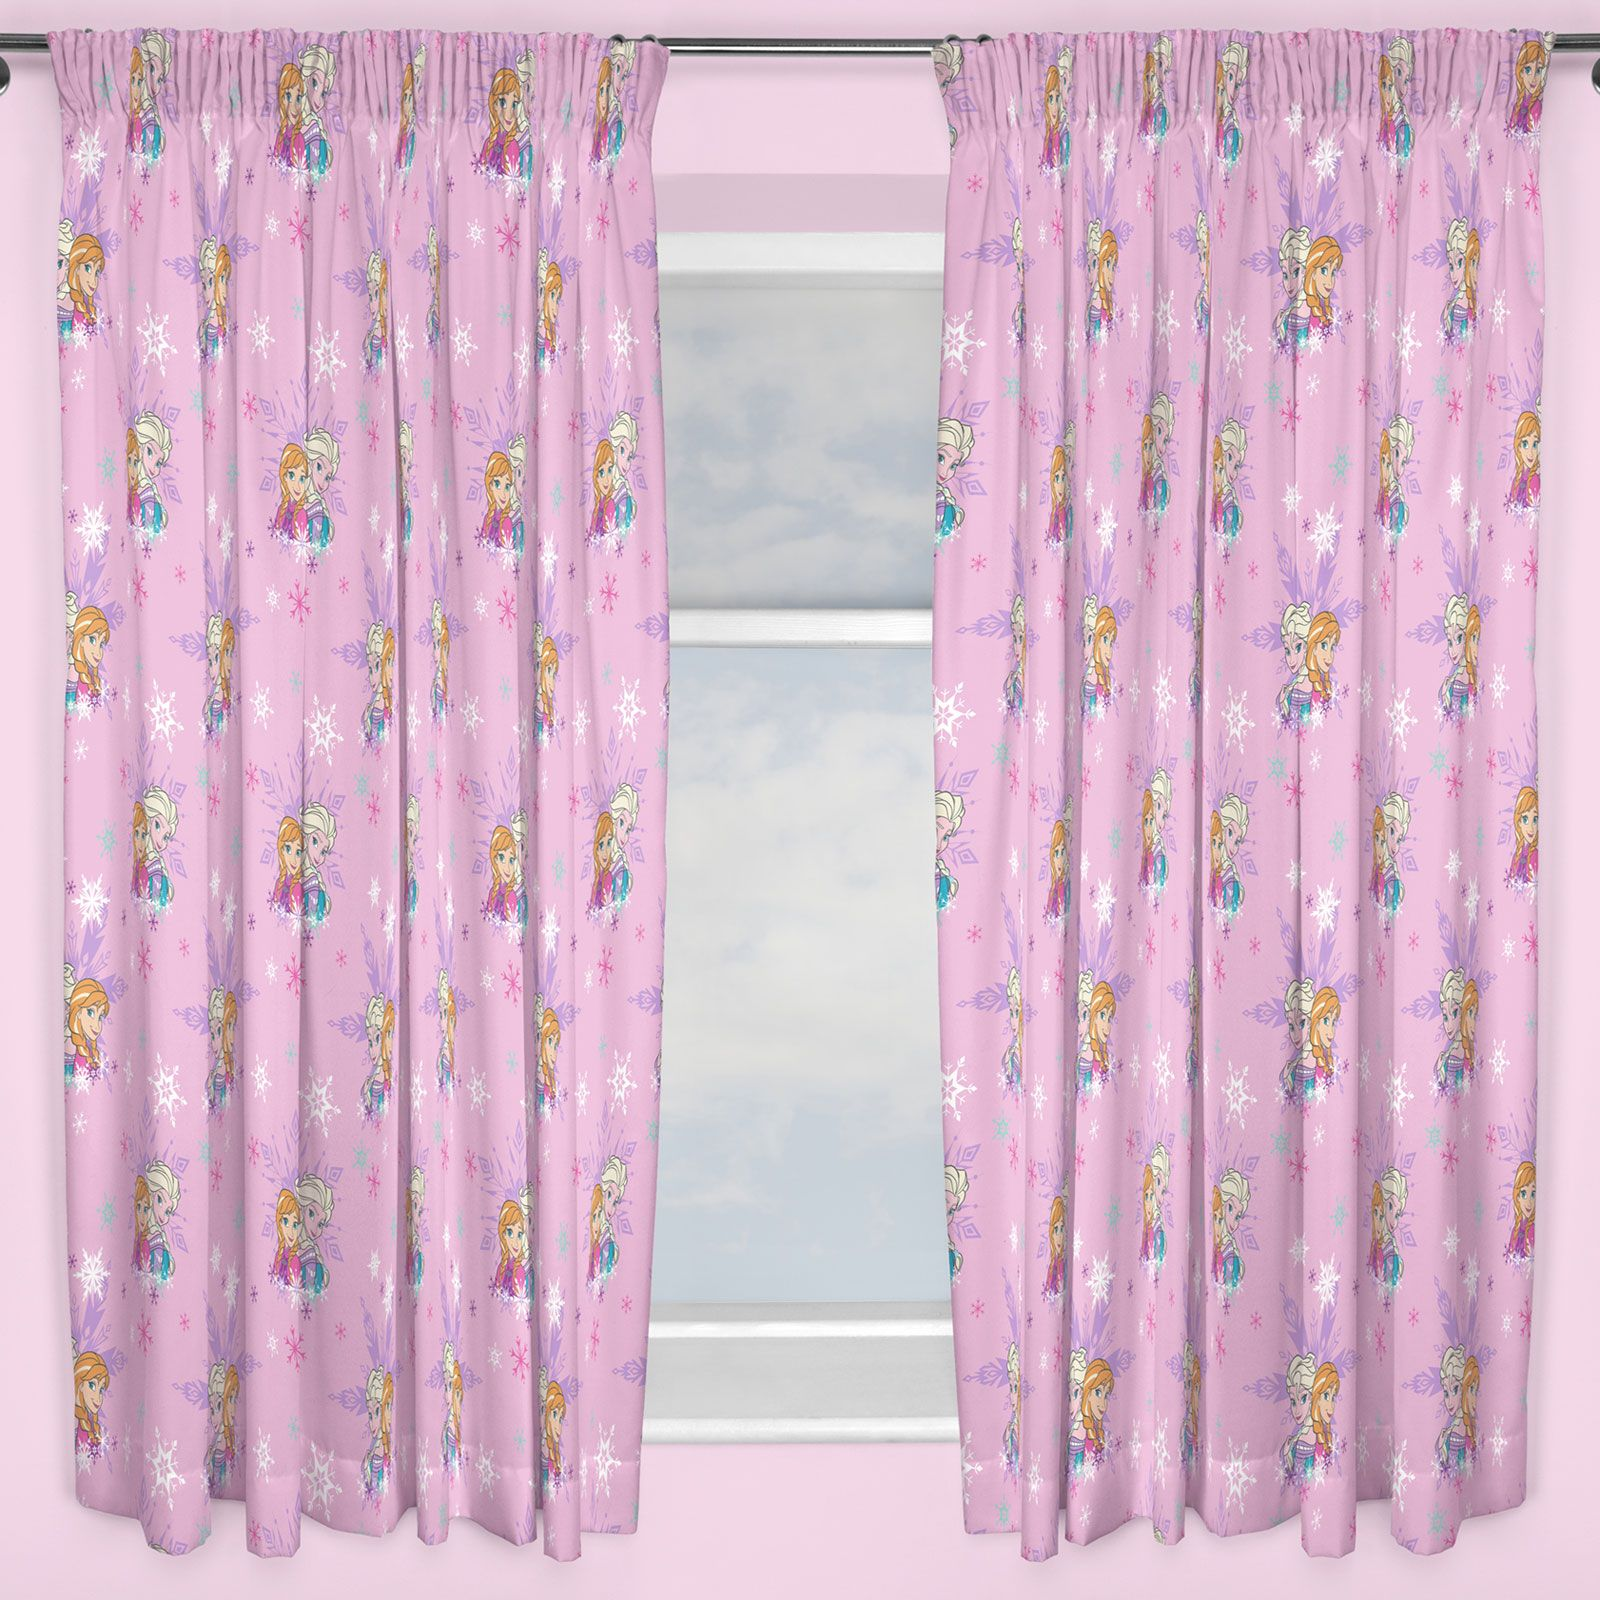 KIDS DISNEY AND CHARACTER CURTAINS 54 72 INCH DROP CHILDRENS